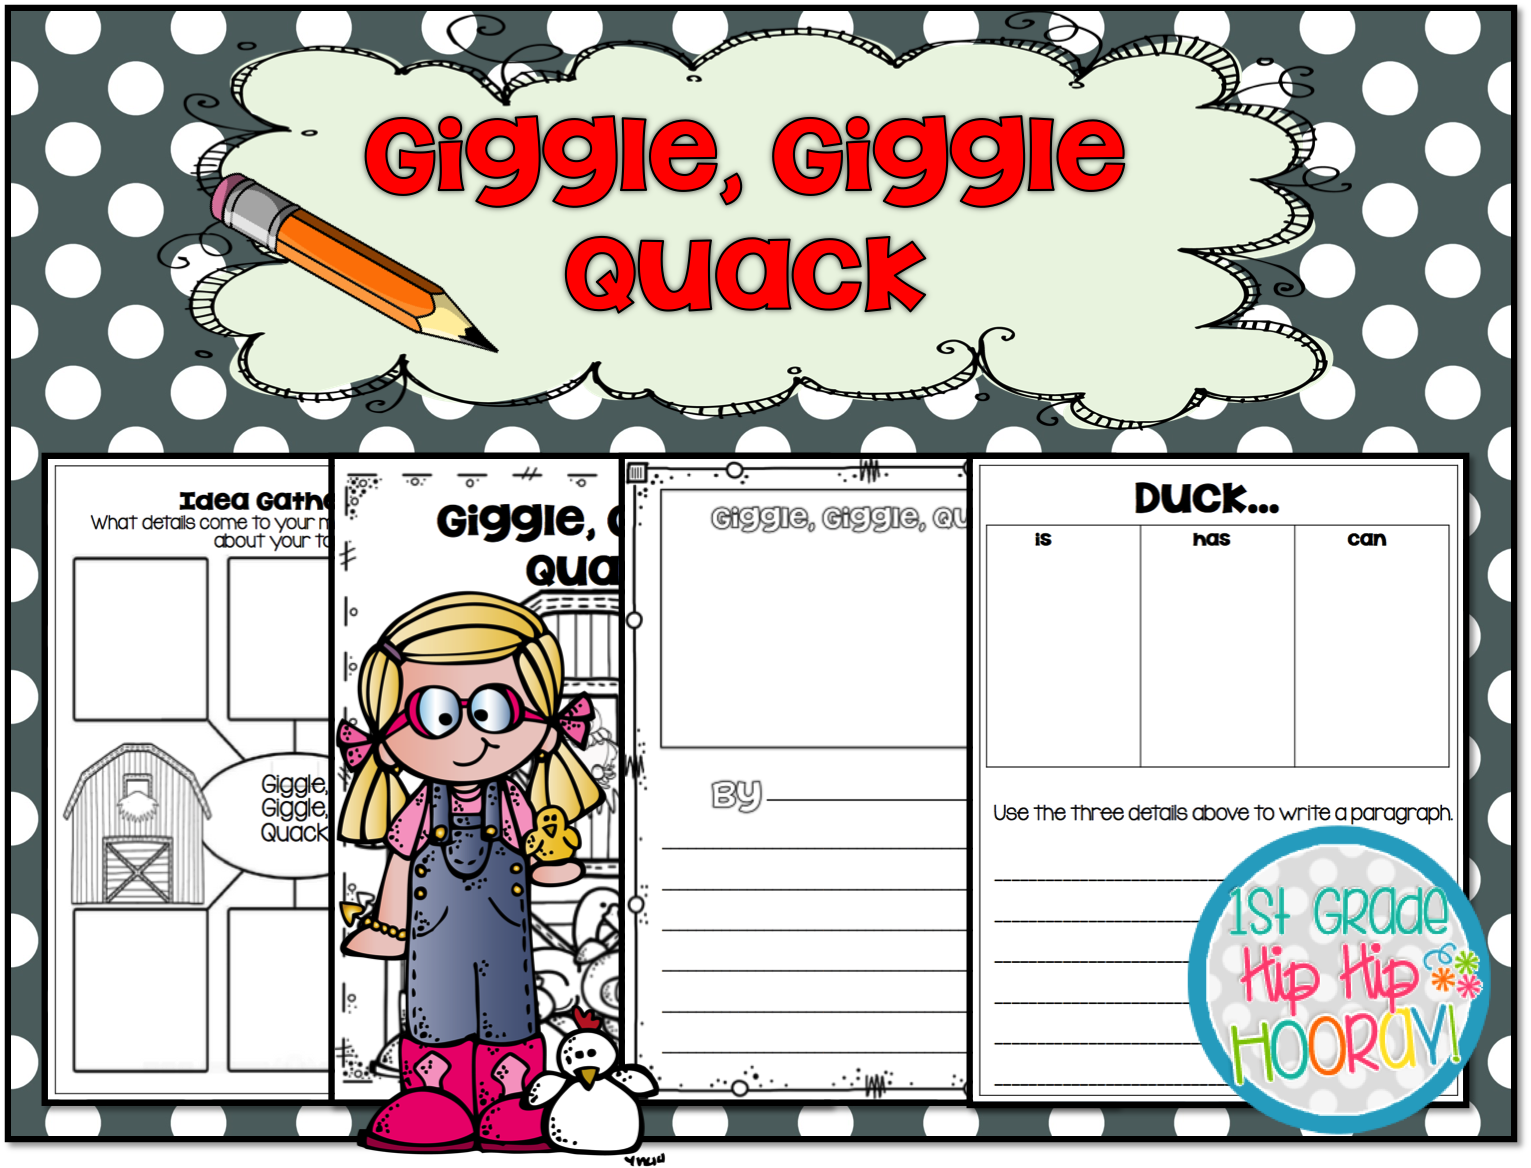 1st Grade Hip Hip Hooray Giggle Giggle Quack By Doreen